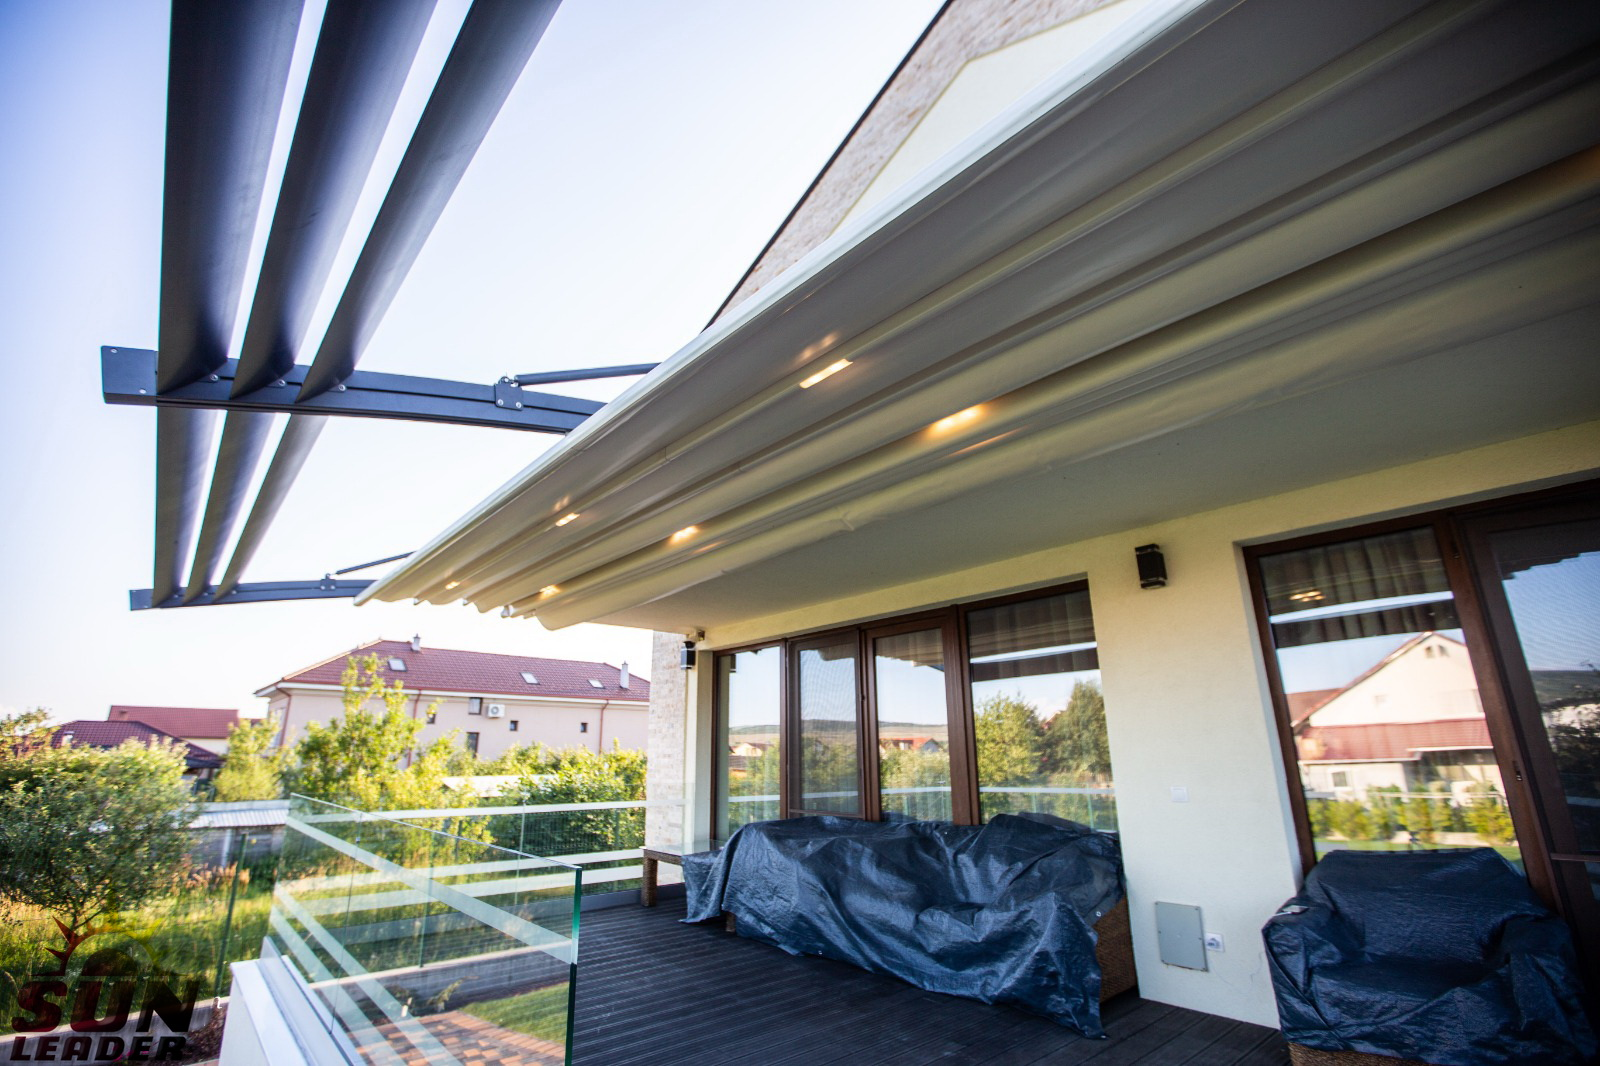 Pergola retractabila Spline City. Modele de pergole retractabile Sun Leader